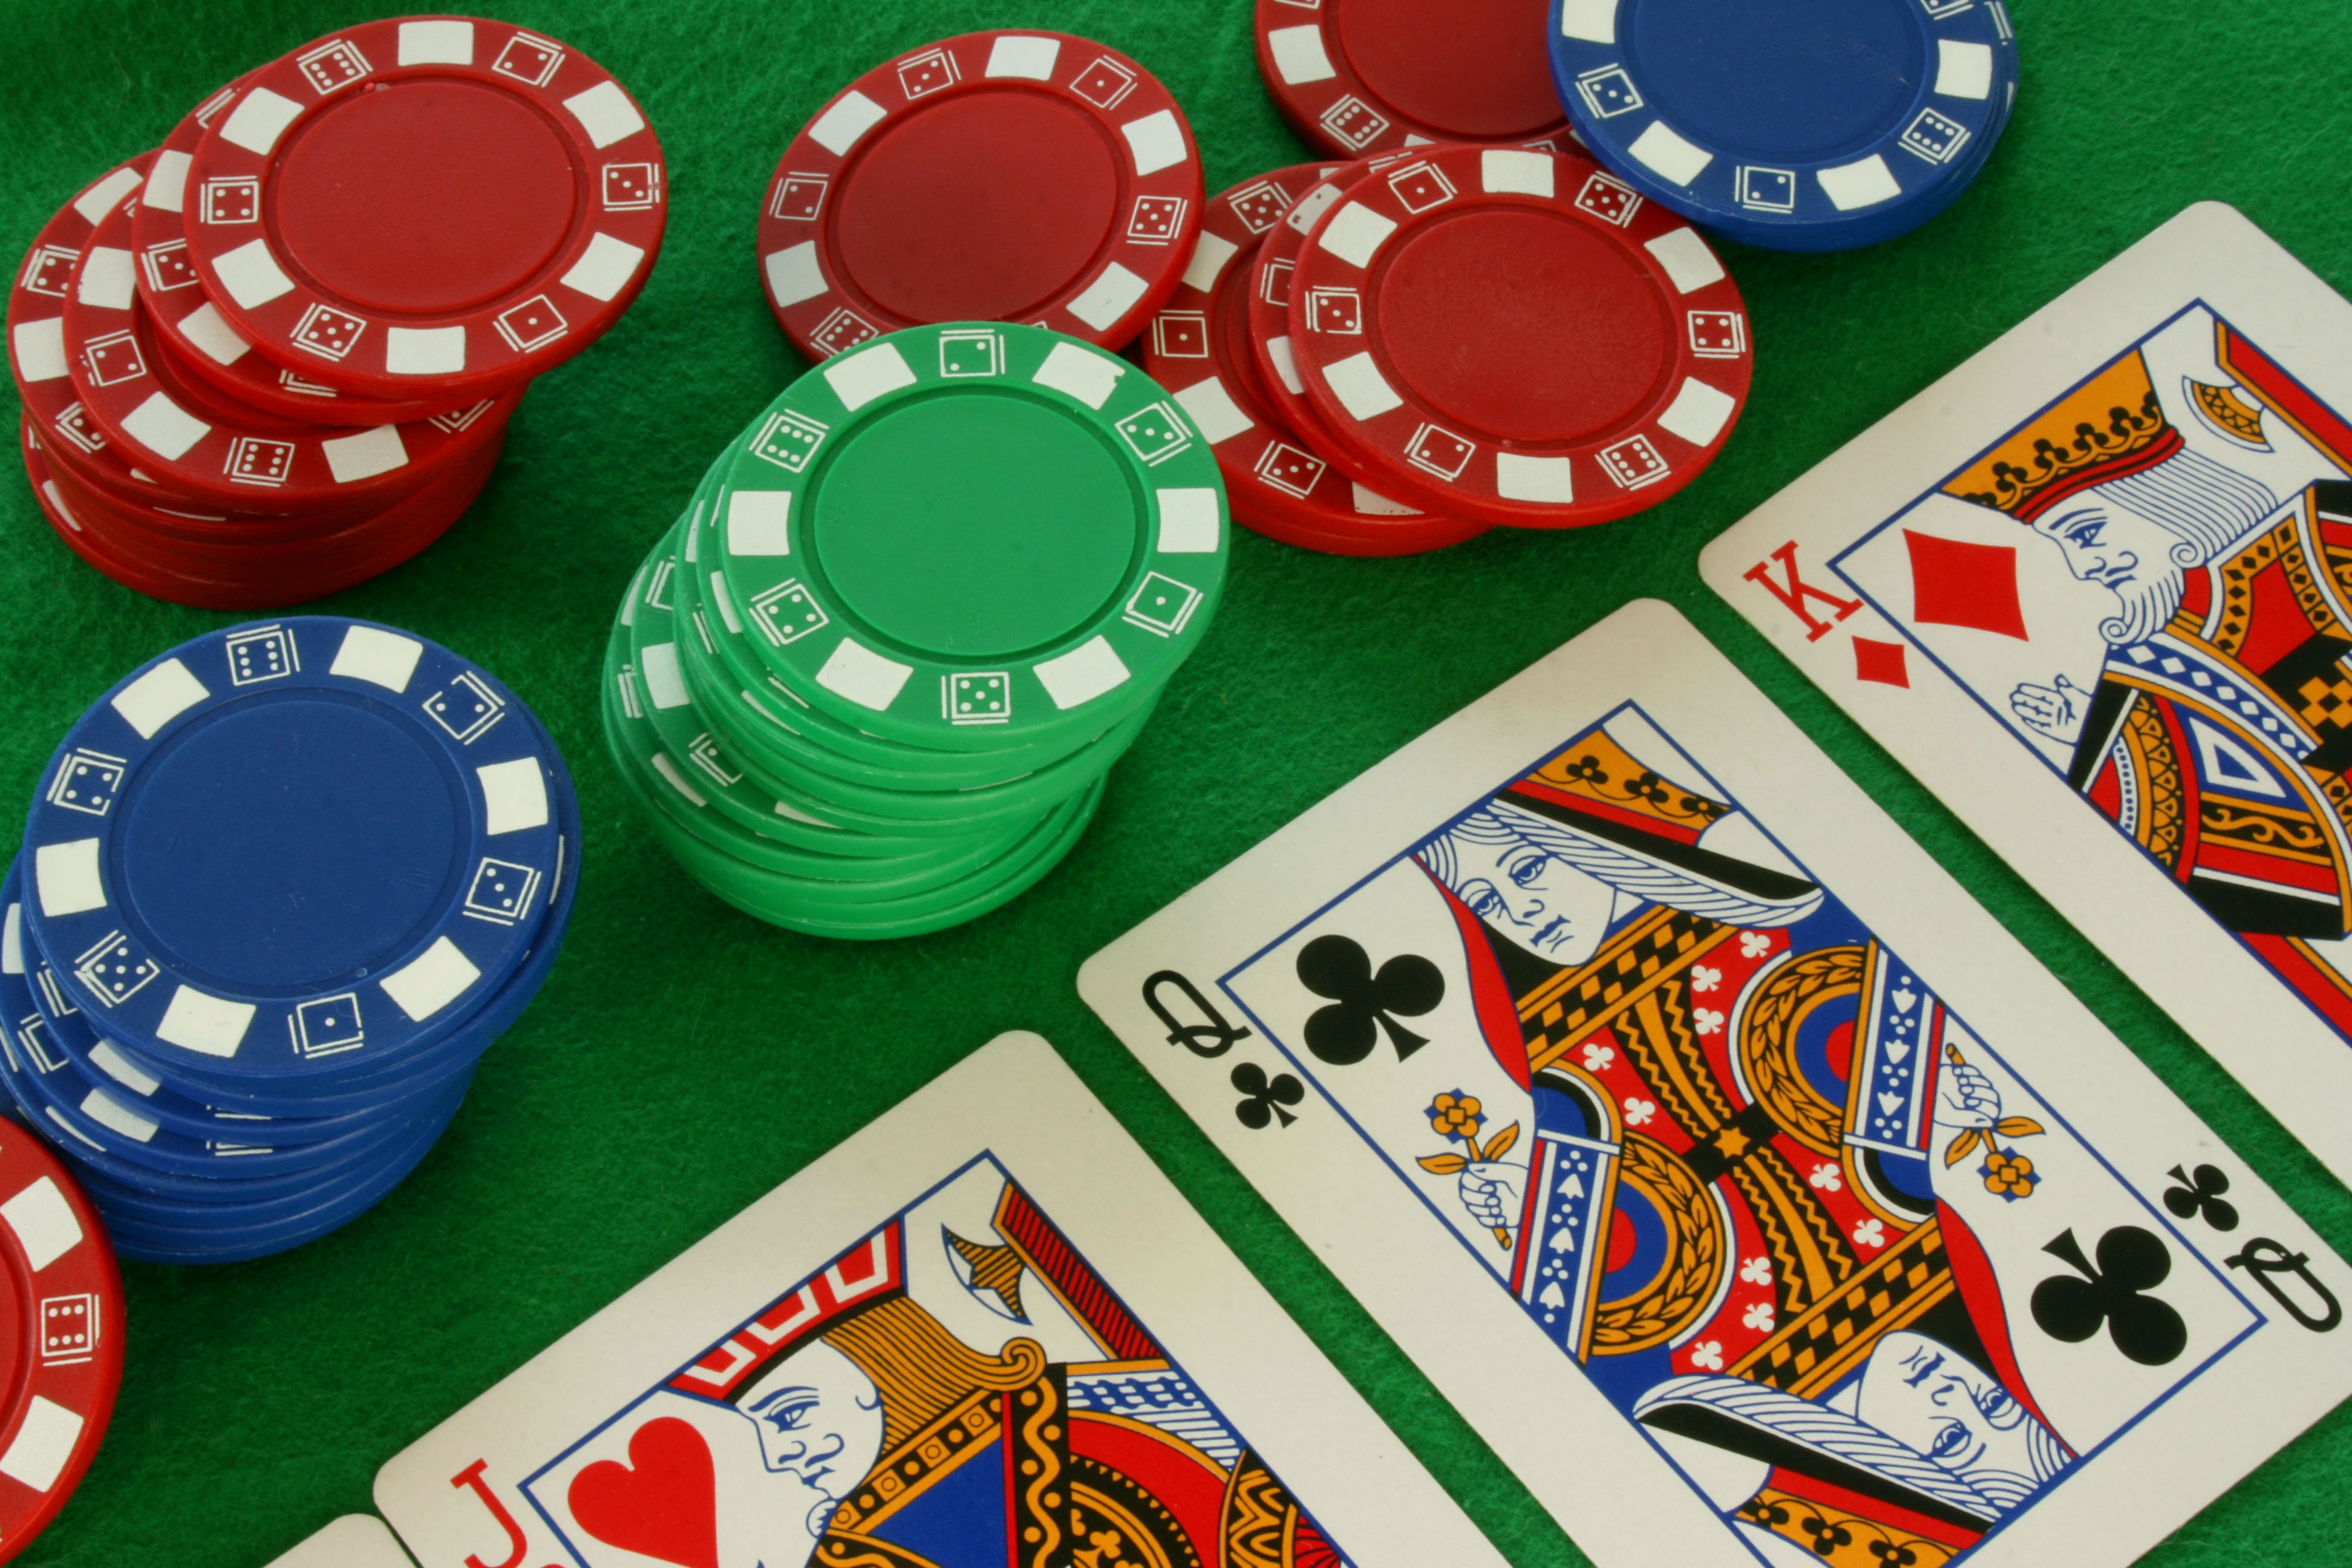 In 2020: what are the 5 poker tips for playing and winning?